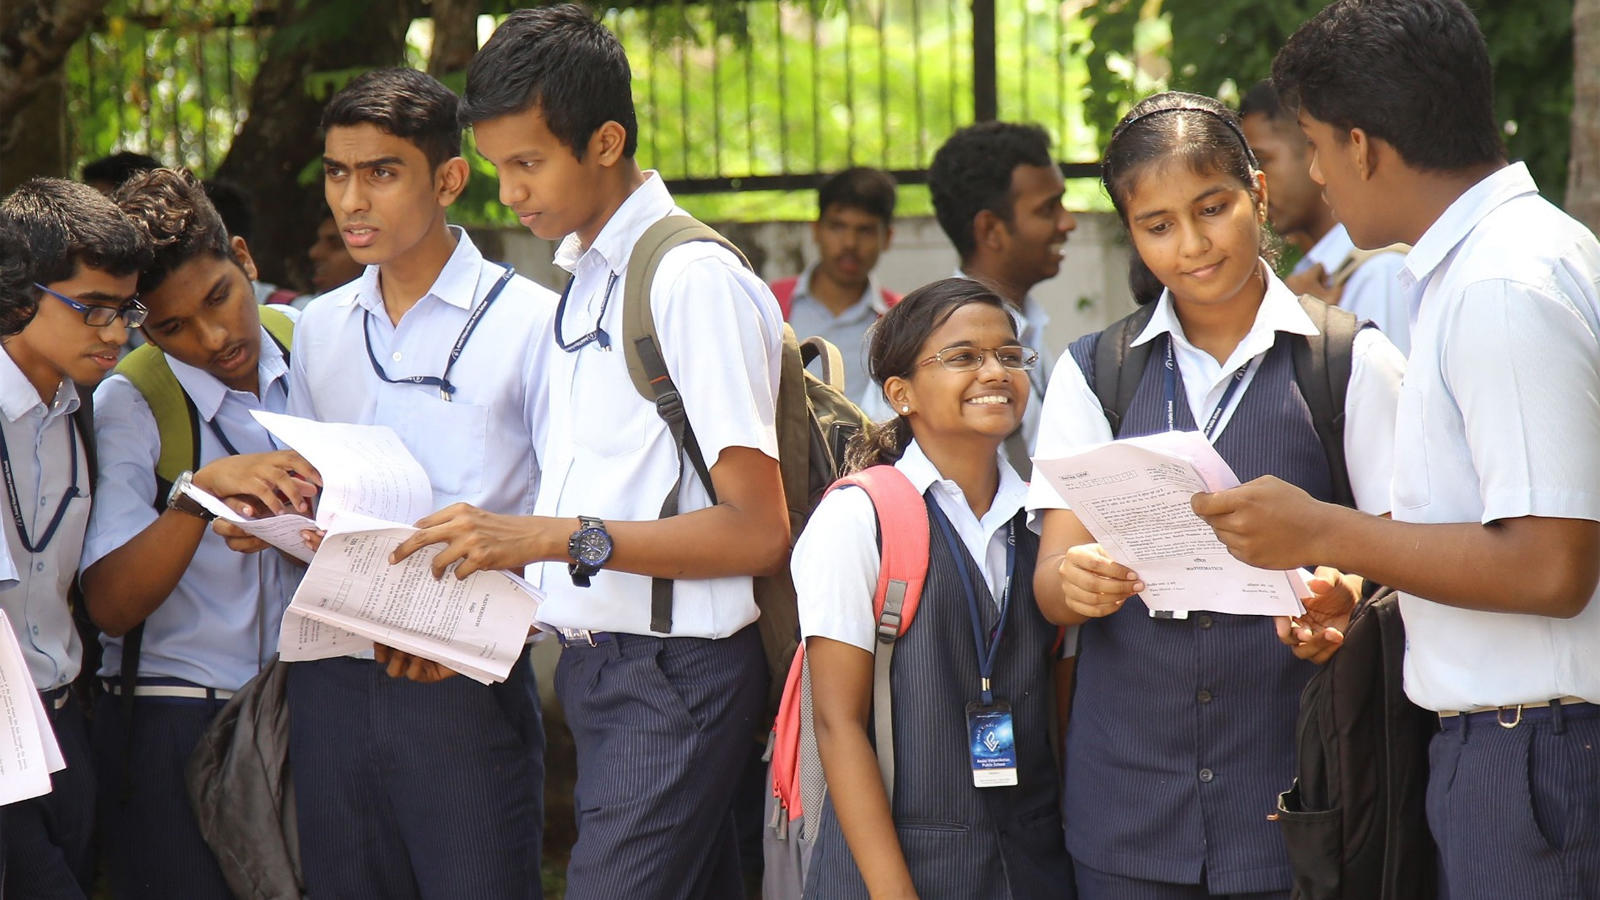 cbse-10th-result-2020-will-be-released-tomorrow-hrd-minister